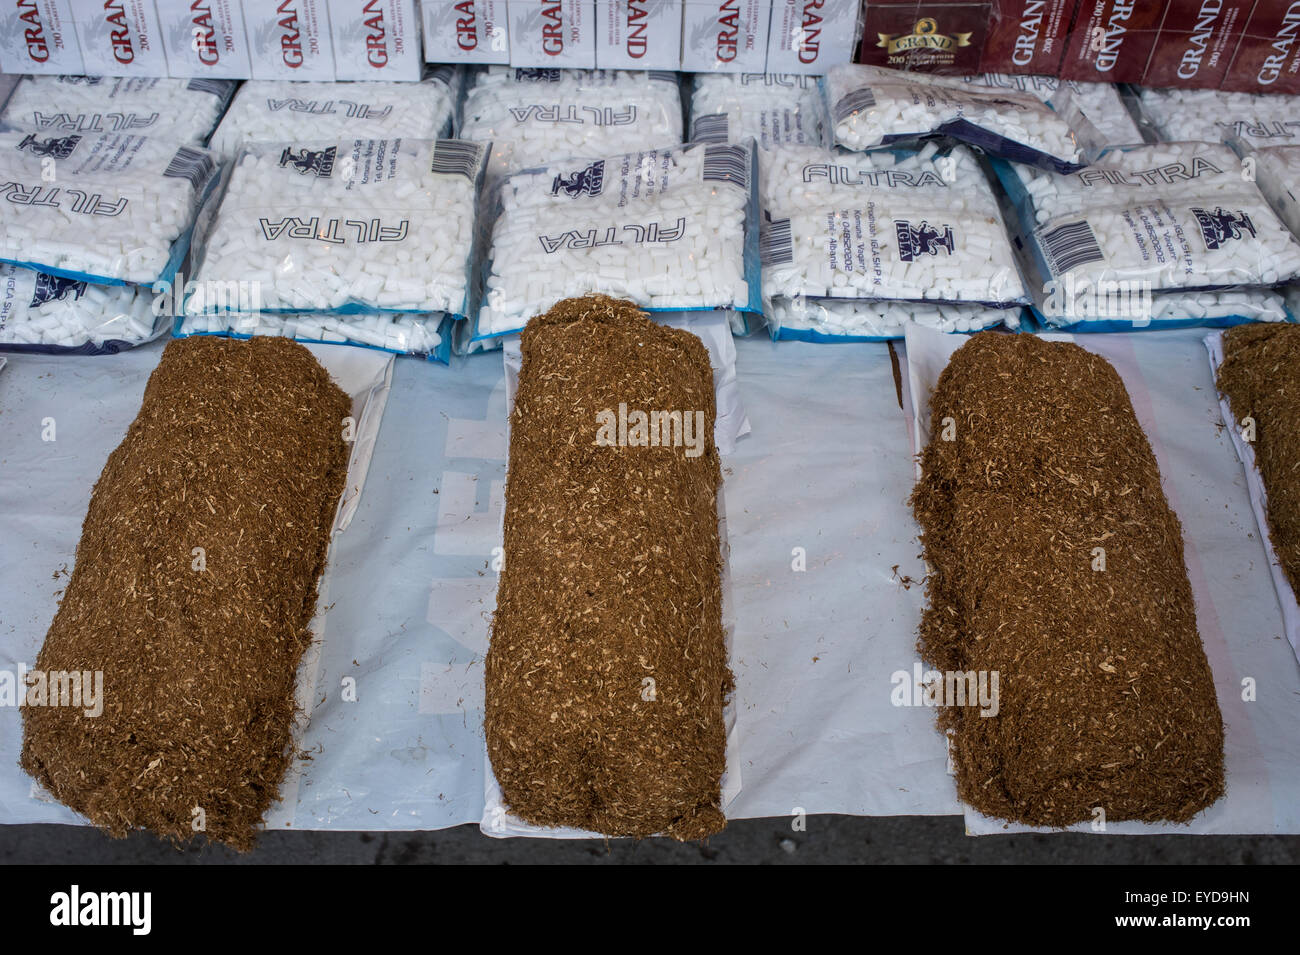 Loaves of raw tobacco, Gran Bazar, Tirana Albania - Stock Image